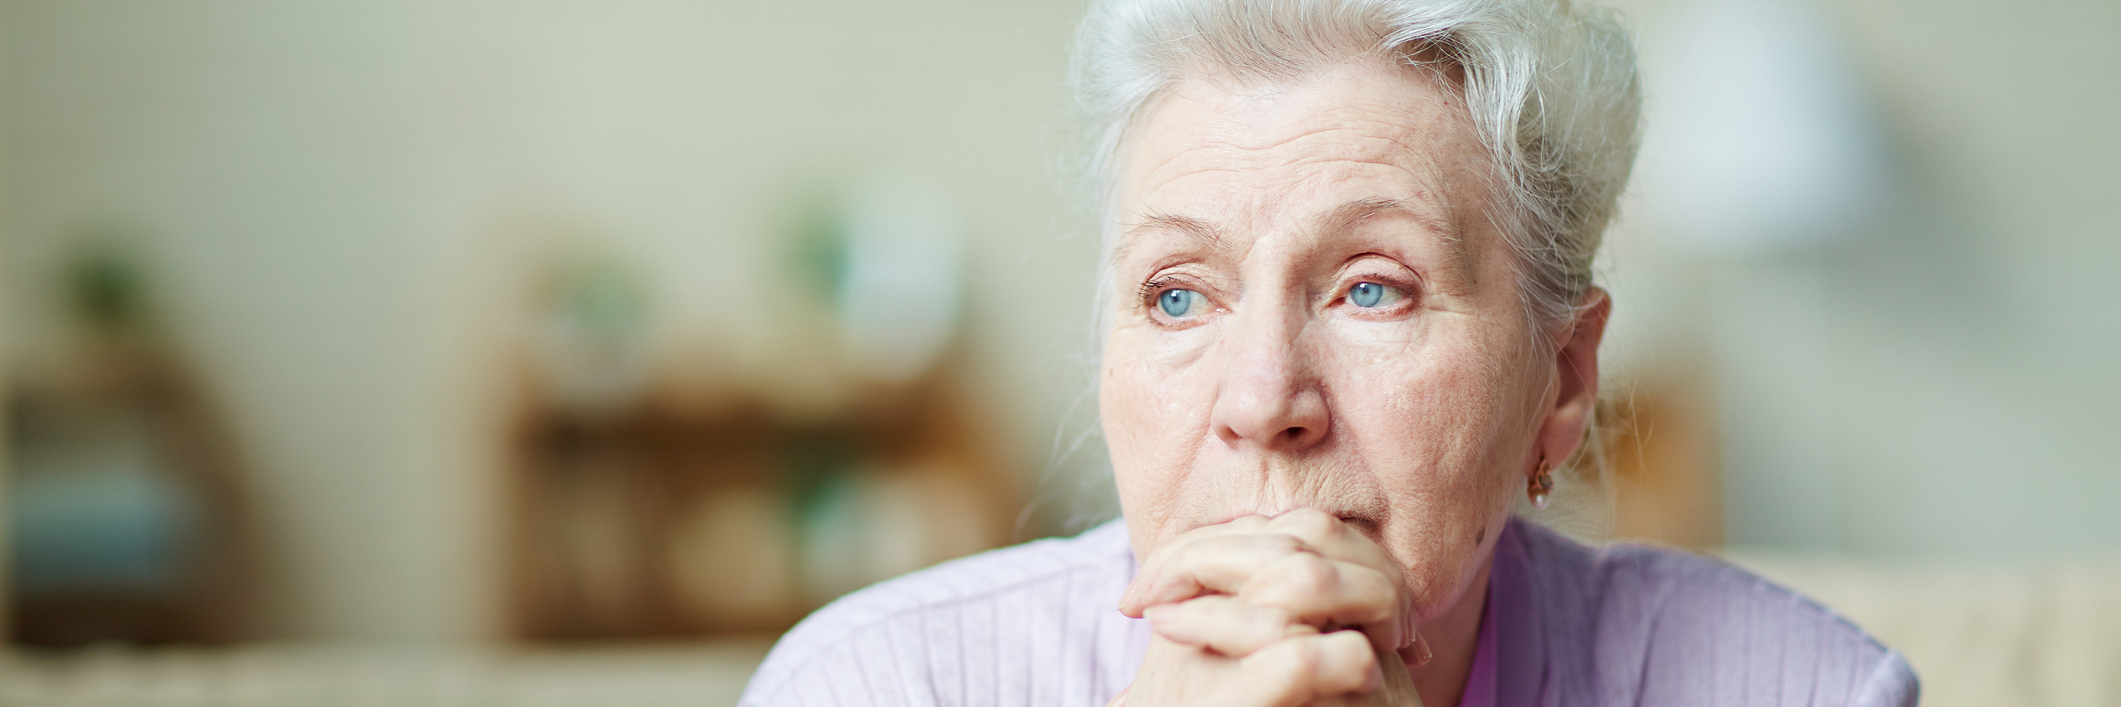 An older woman sits, looking unhappy.